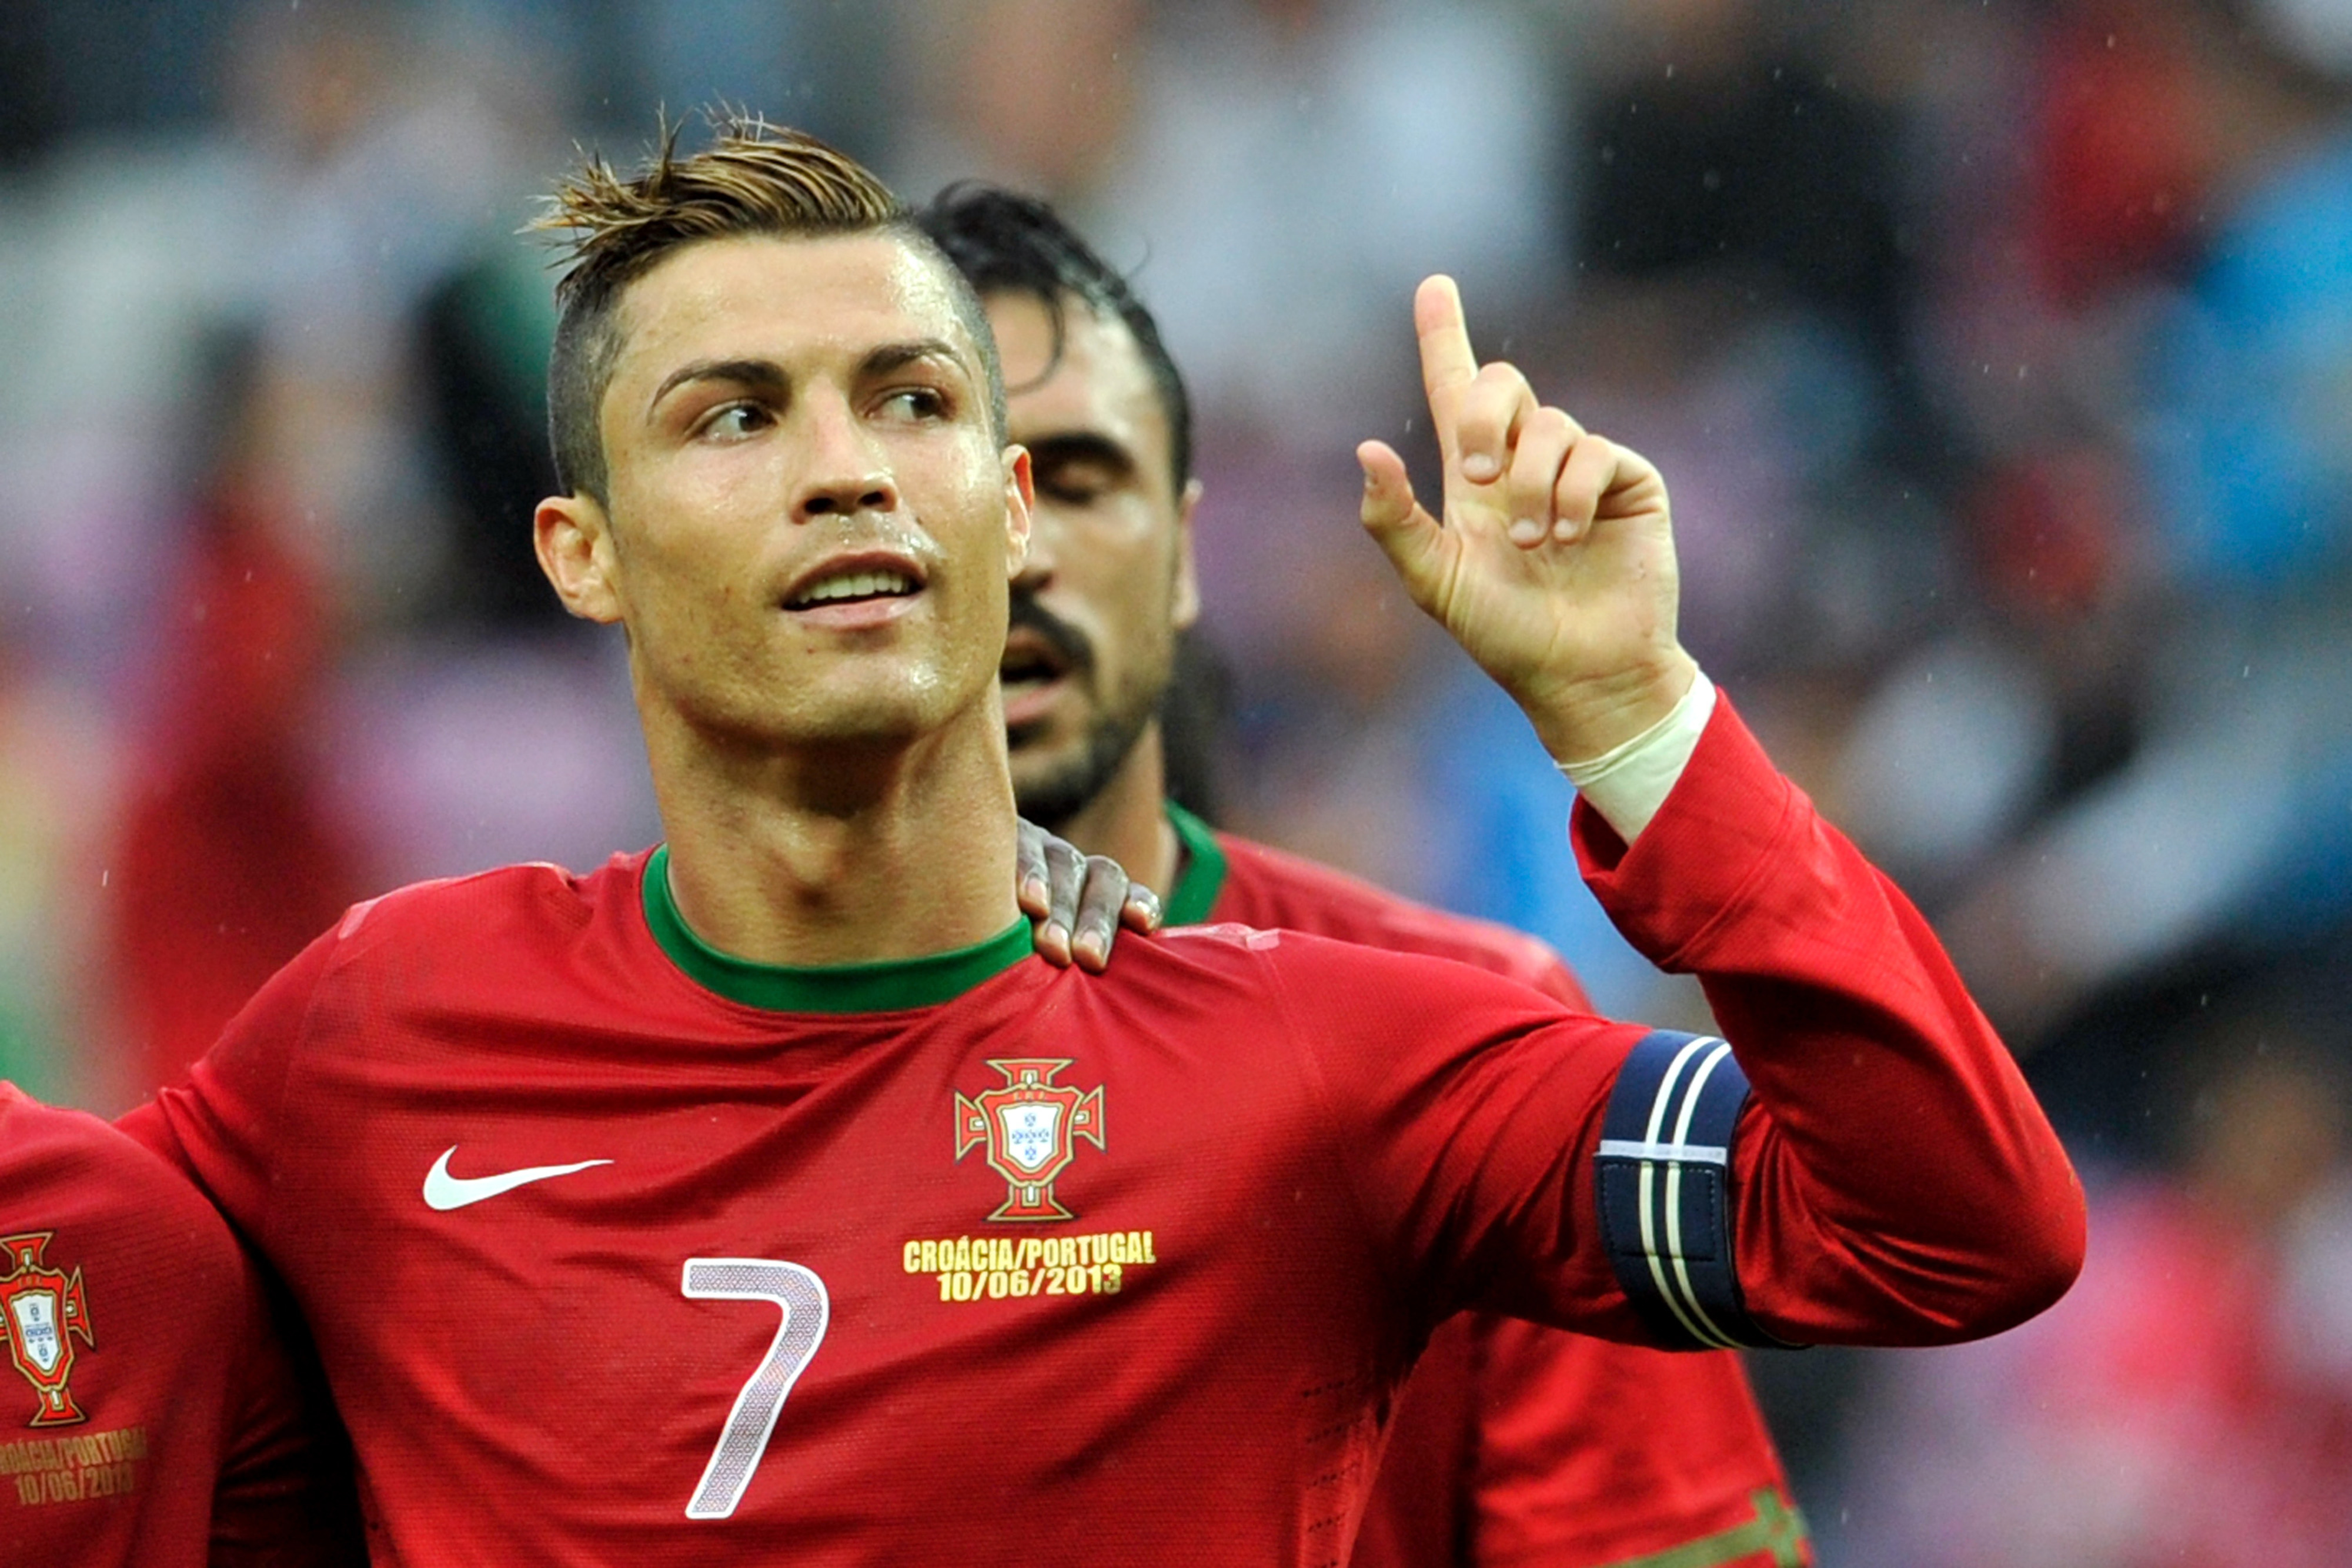 UEFA playoffs set for final four 2014 World Cup spots